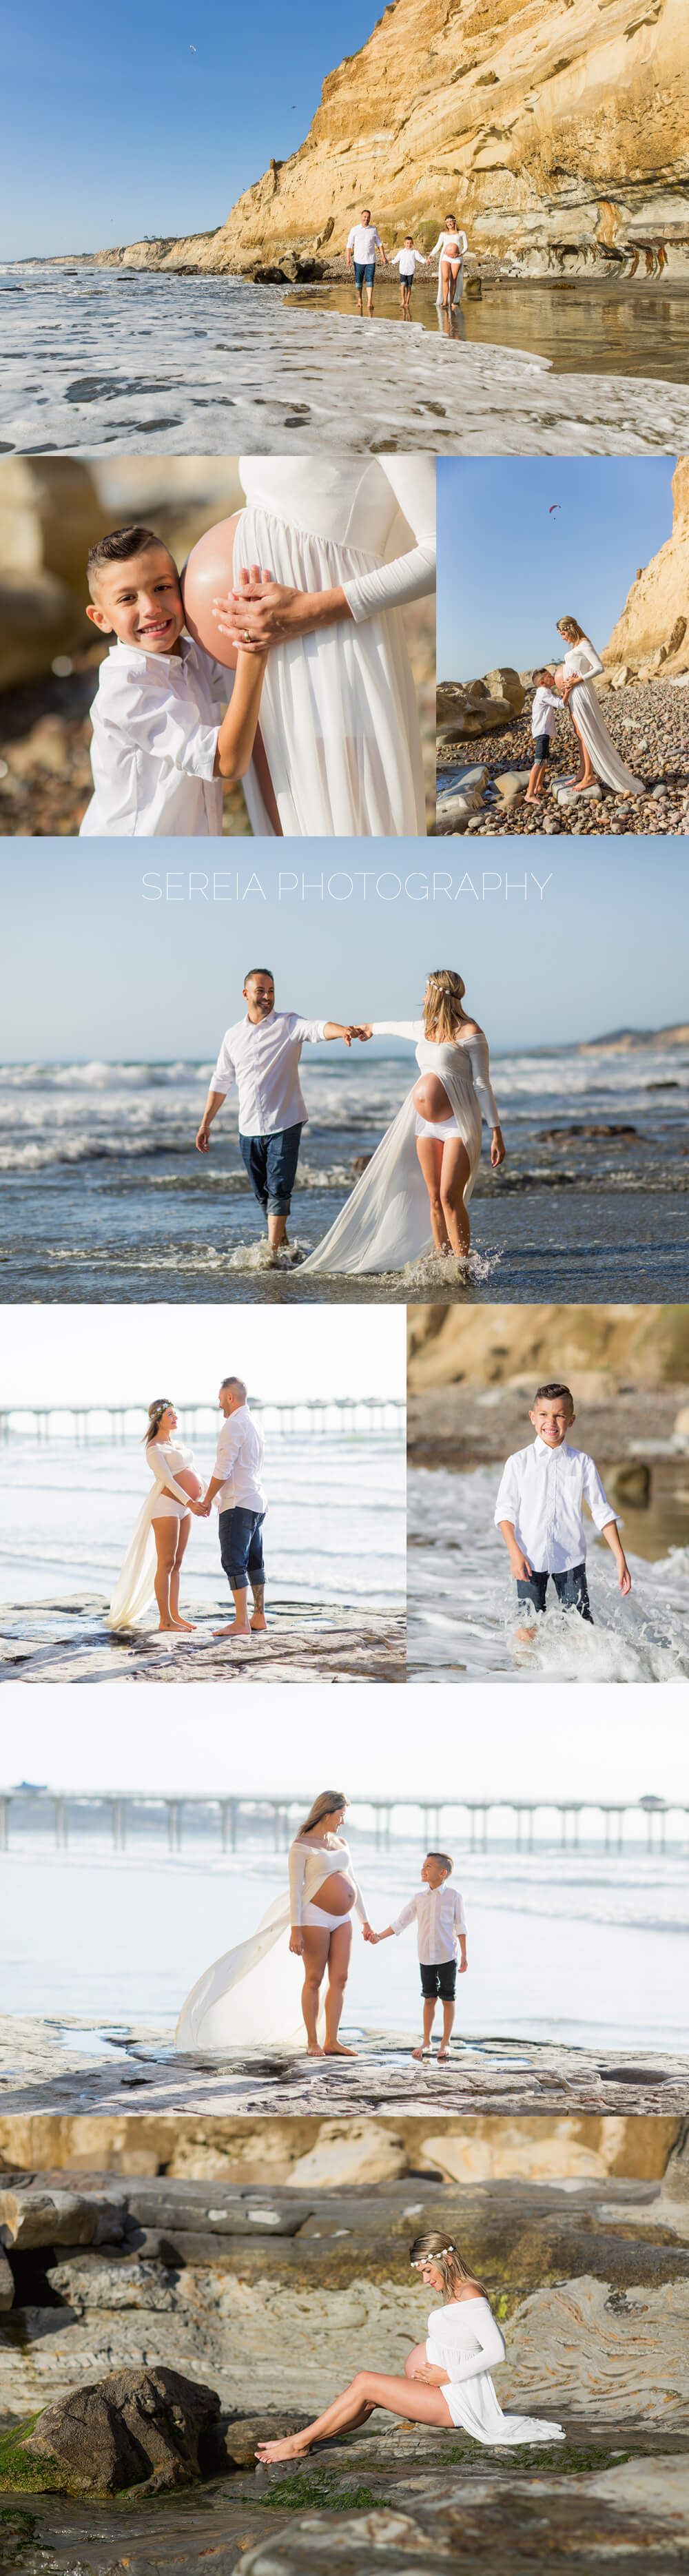 Maternity Session at Scripps Pier in La Jolla